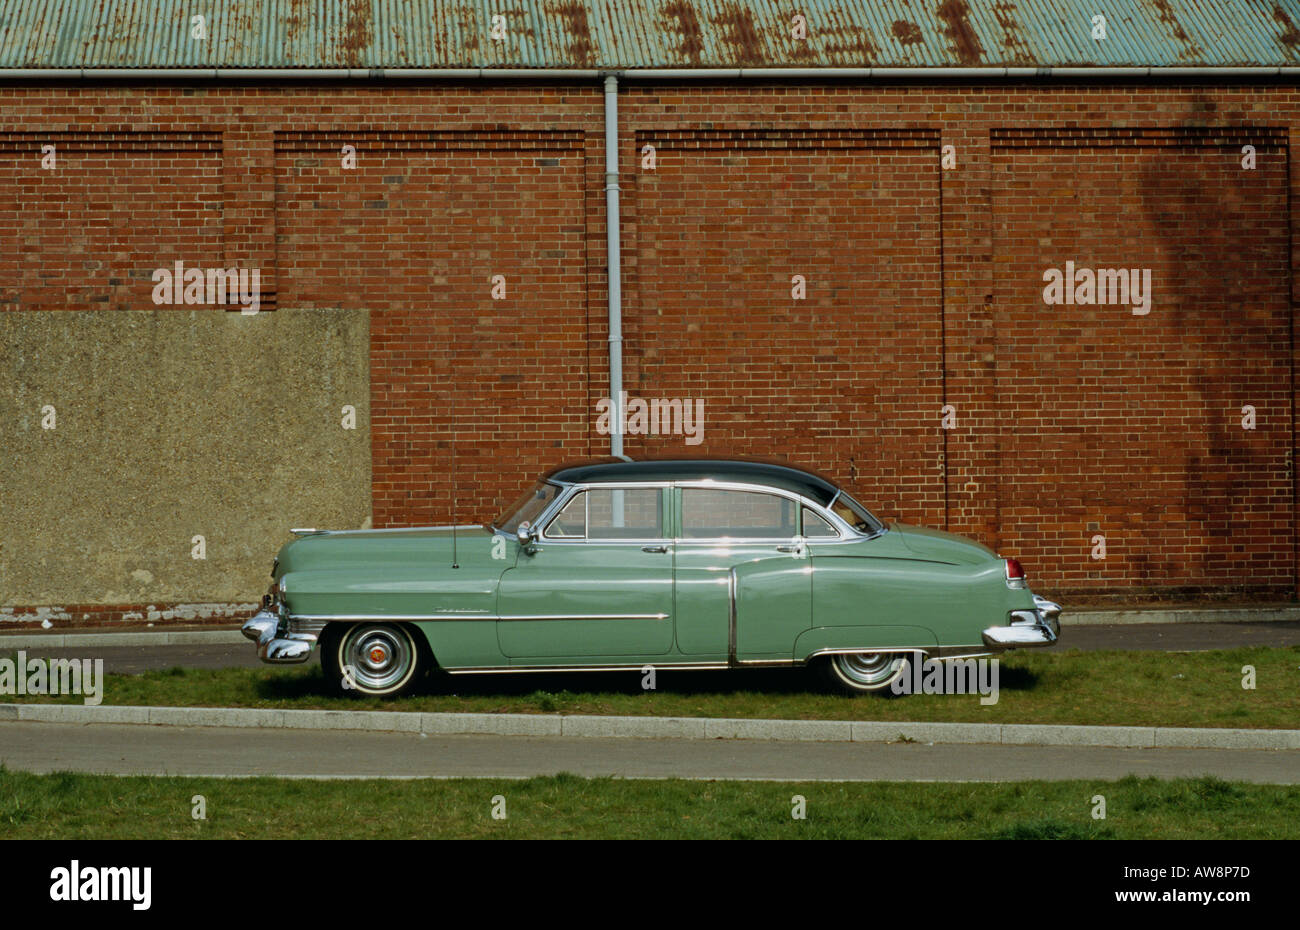 Cadillac Series 62 Images Stock Photos 1951 Coupe Sedan Of Image